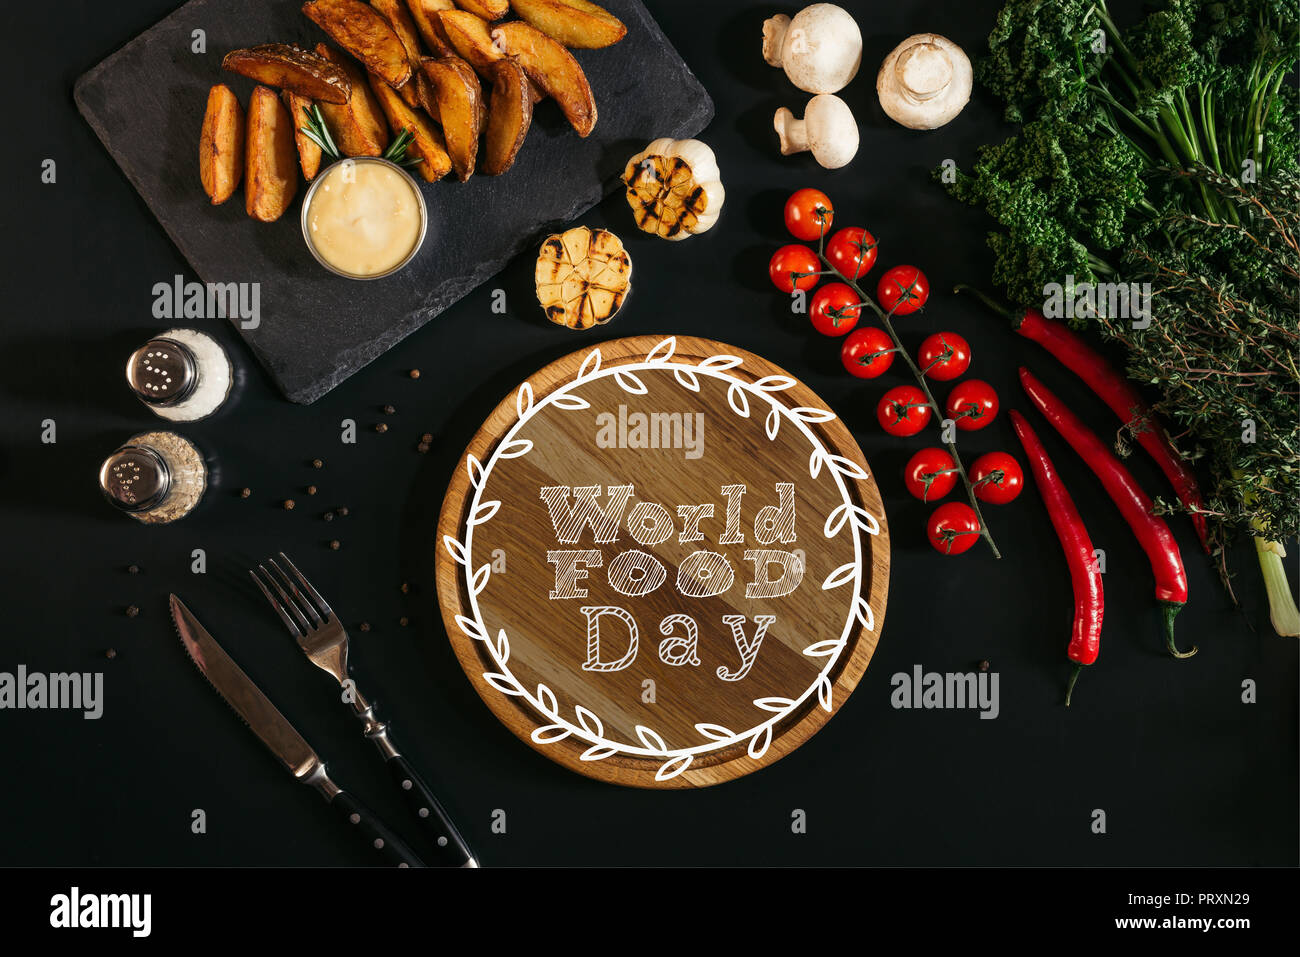 top view of wooden board with 'world food day' lettering, vegetables and baked potatoes on black - Stock Image